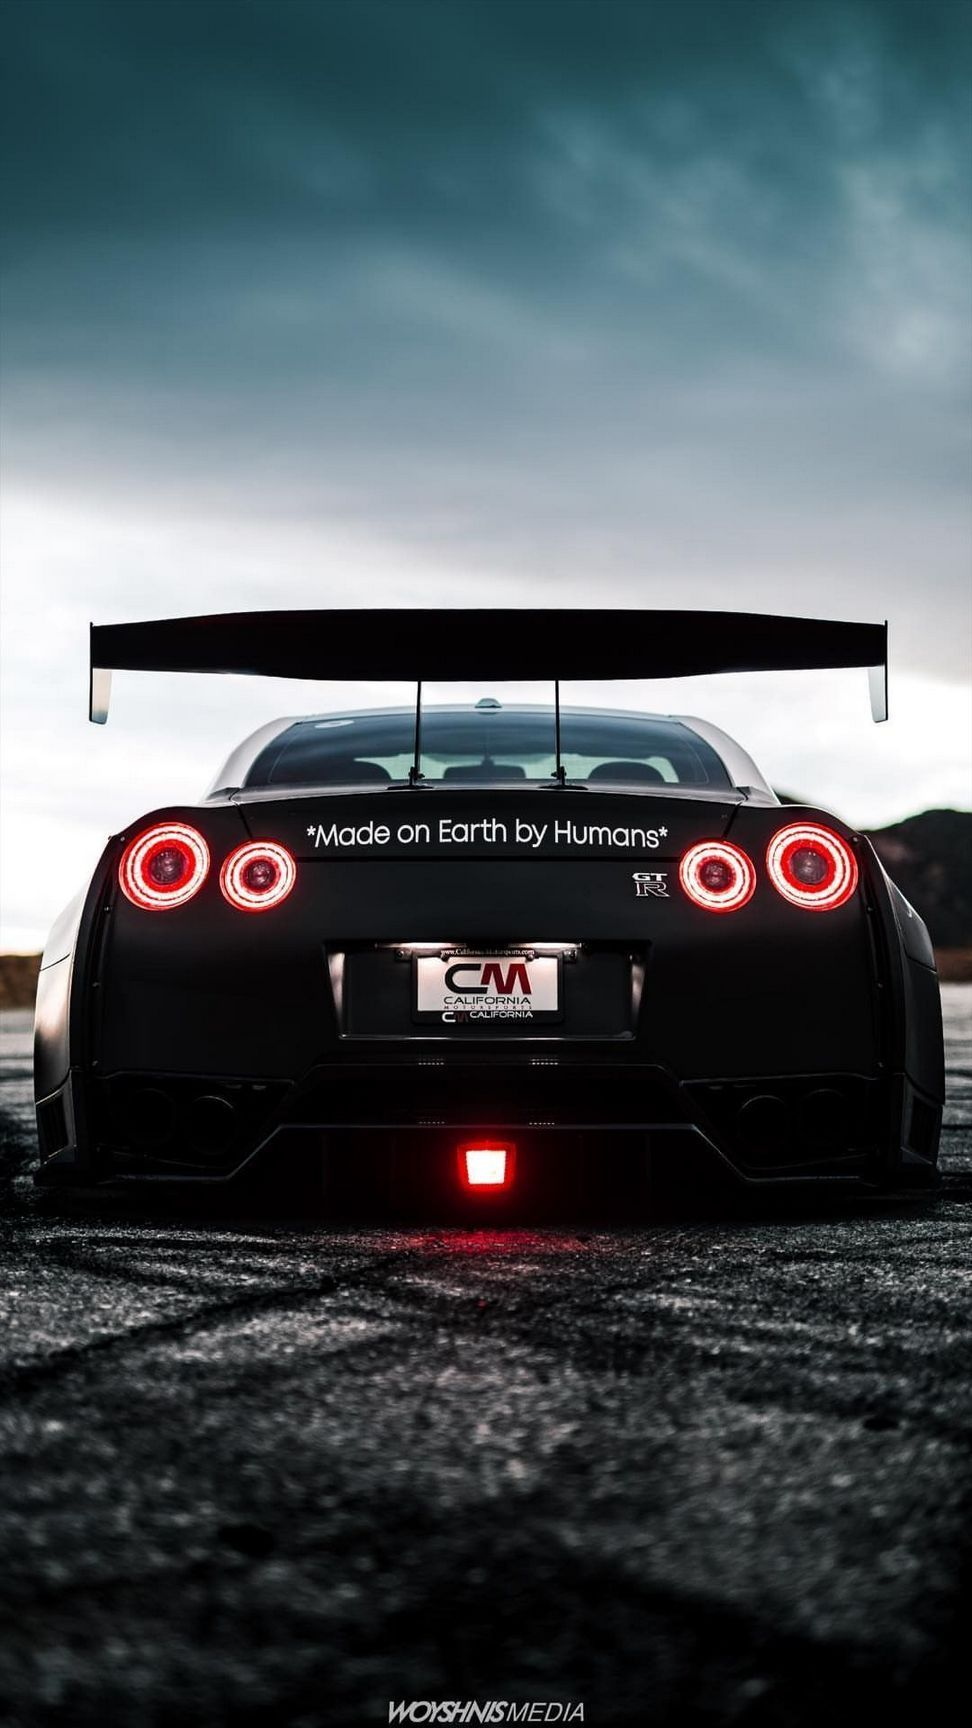 40 Greatest Sport Car Wallpaper Ideas For Android And Iphone Nissan Gtr Sports Car Wallpaper Gtr